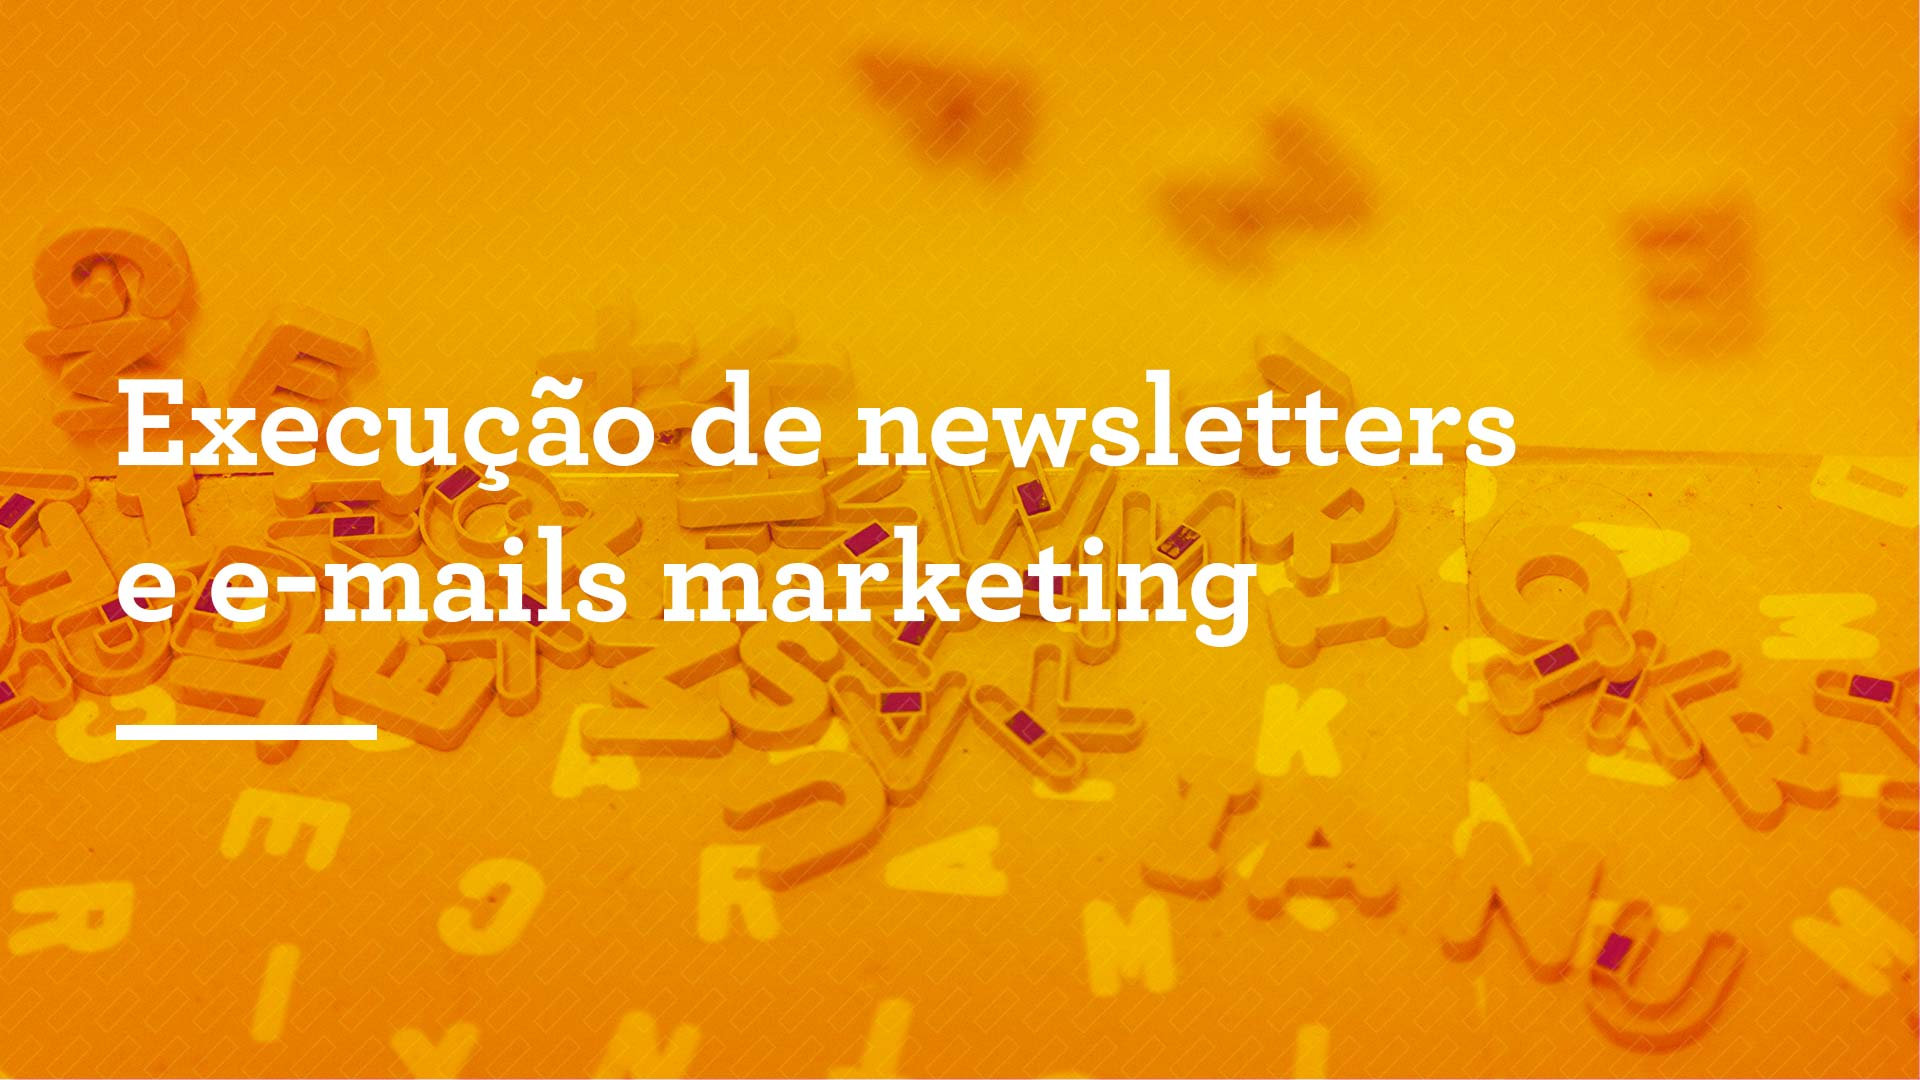 Execução de newsletters e e-mails marketing